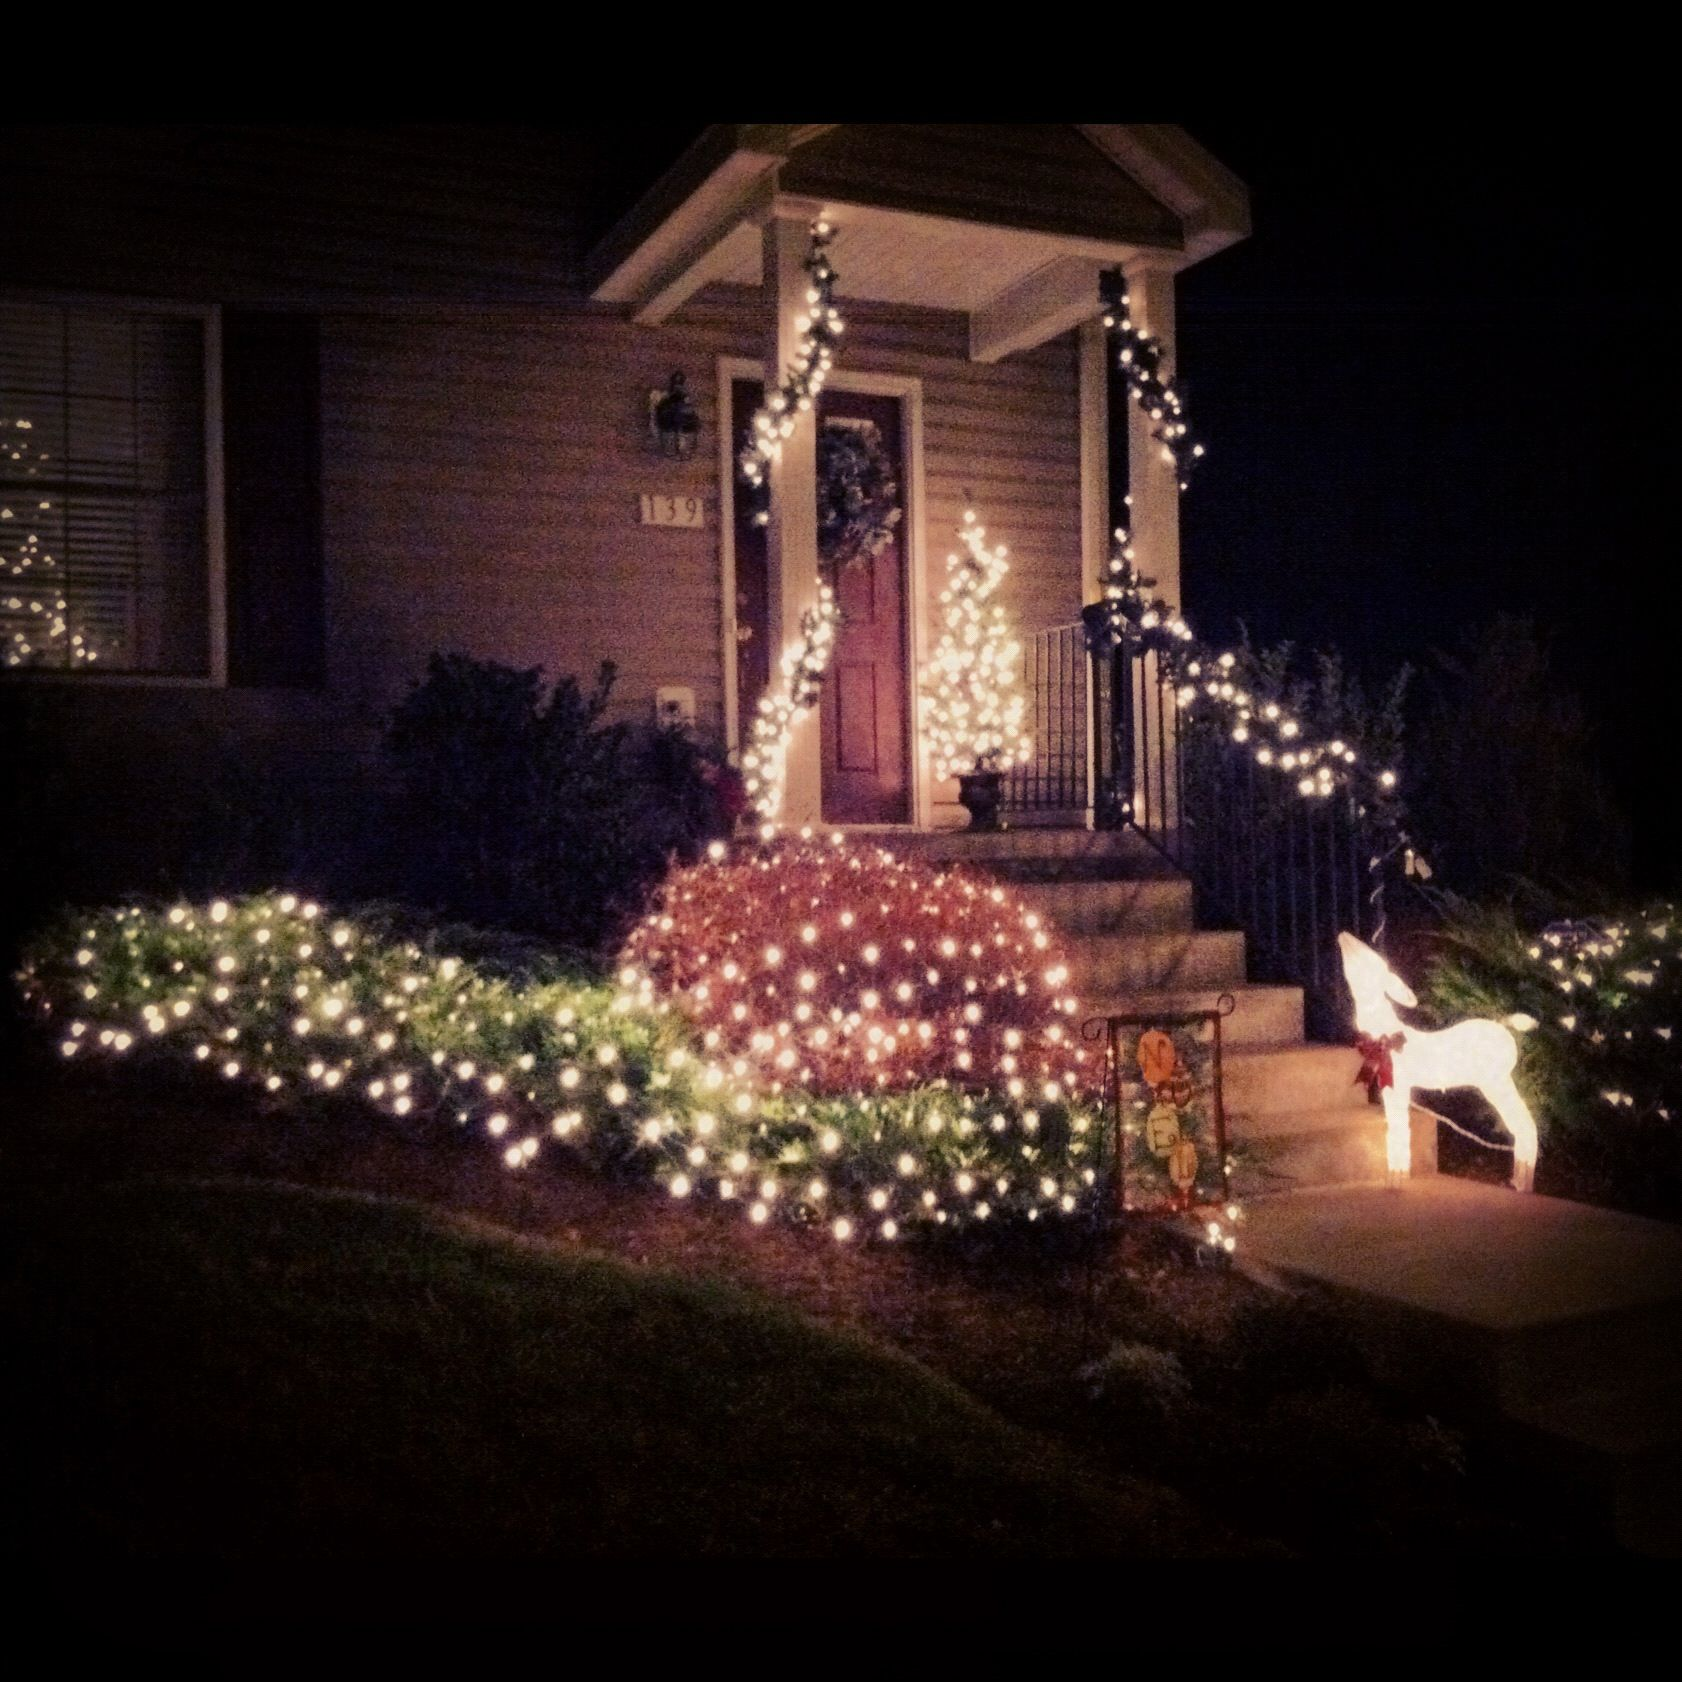 Decorating A Townhouse With Christmas Lights Christmas Lights Outdoor Christmas Decorations Townhouse